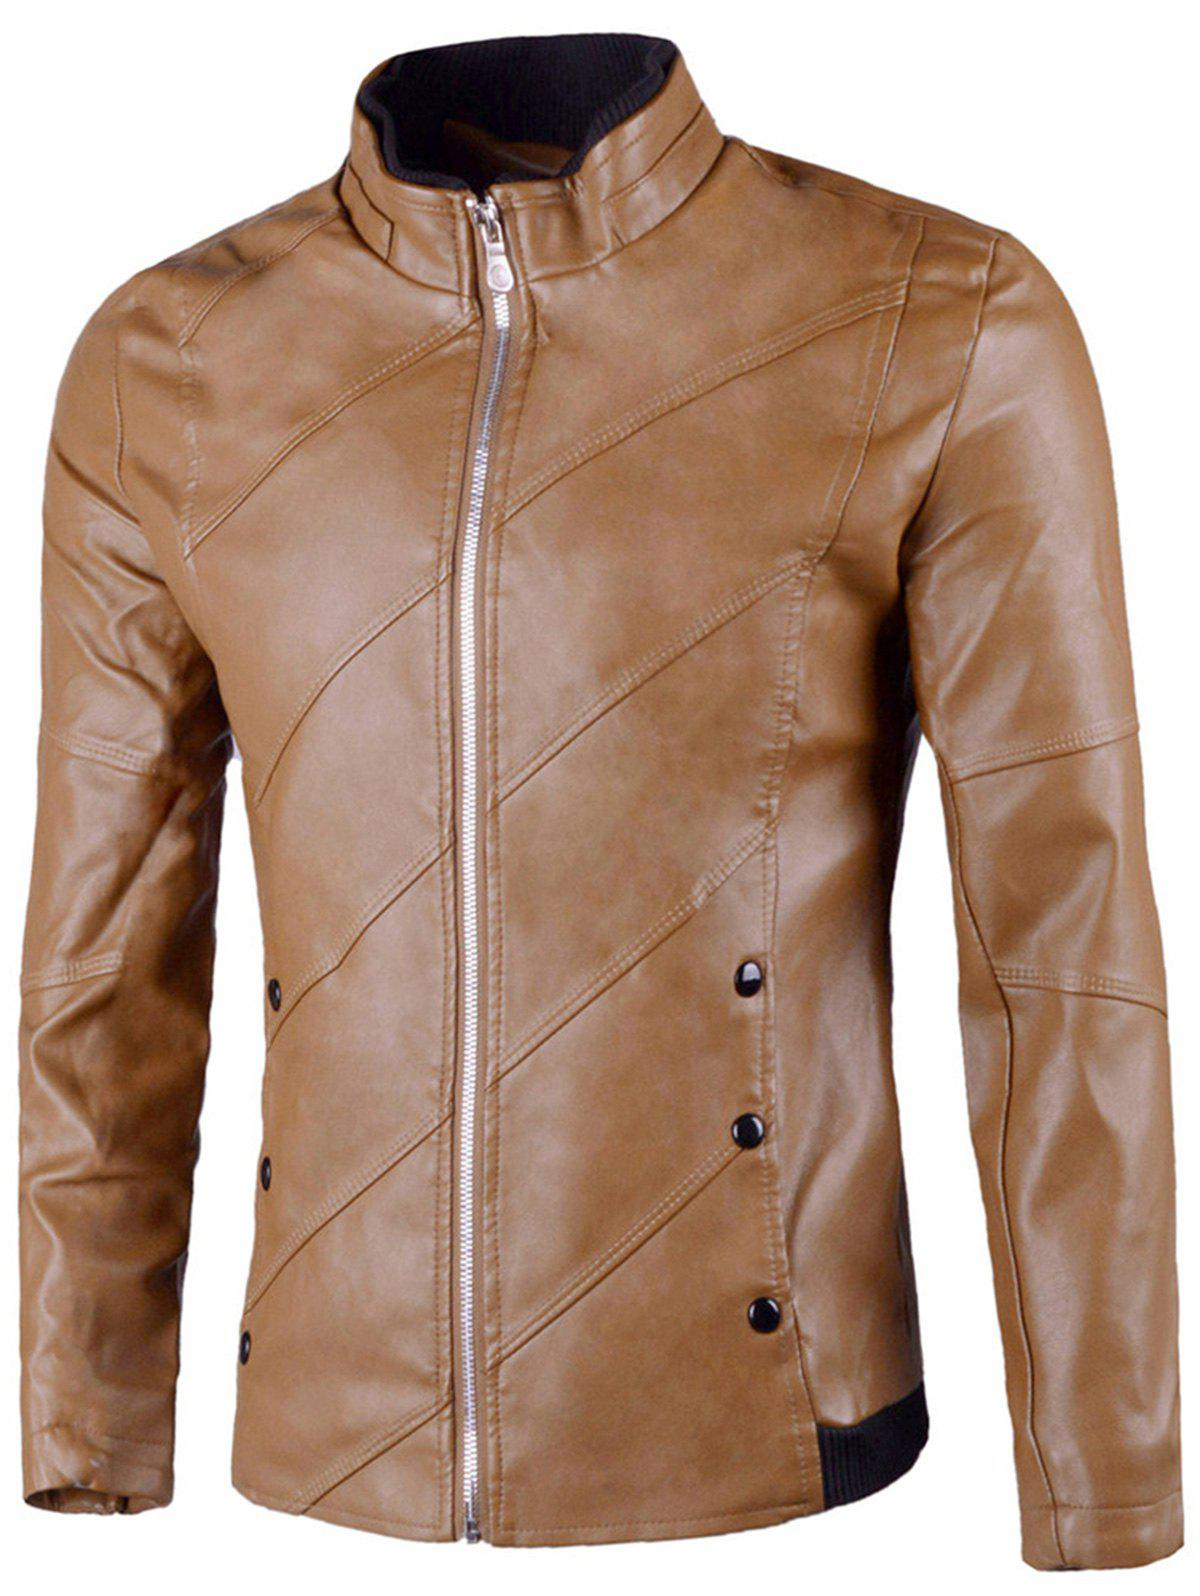 Flap Button Embellished Zip Up Faux Leather Jacket flap button embellished zip up faux leather jacket